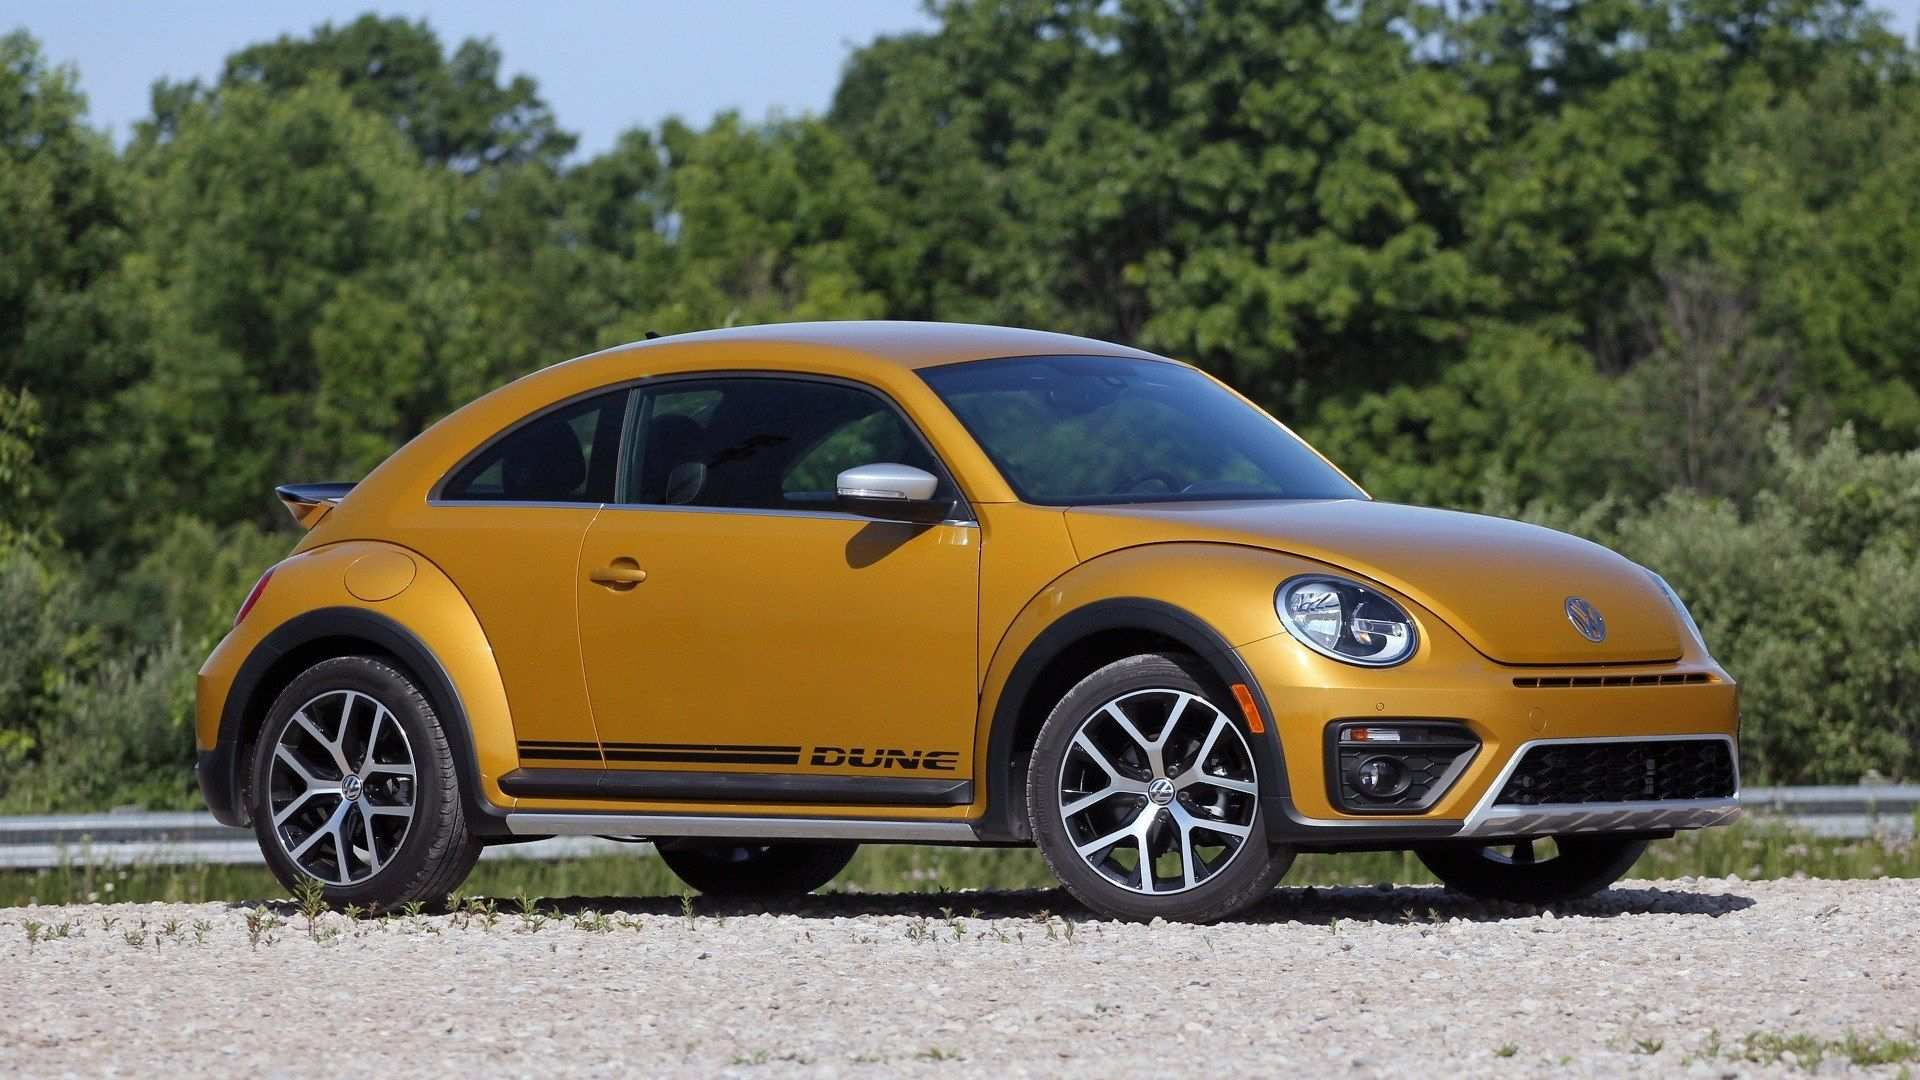 91 All New 2020 Vw Beetle Dune History